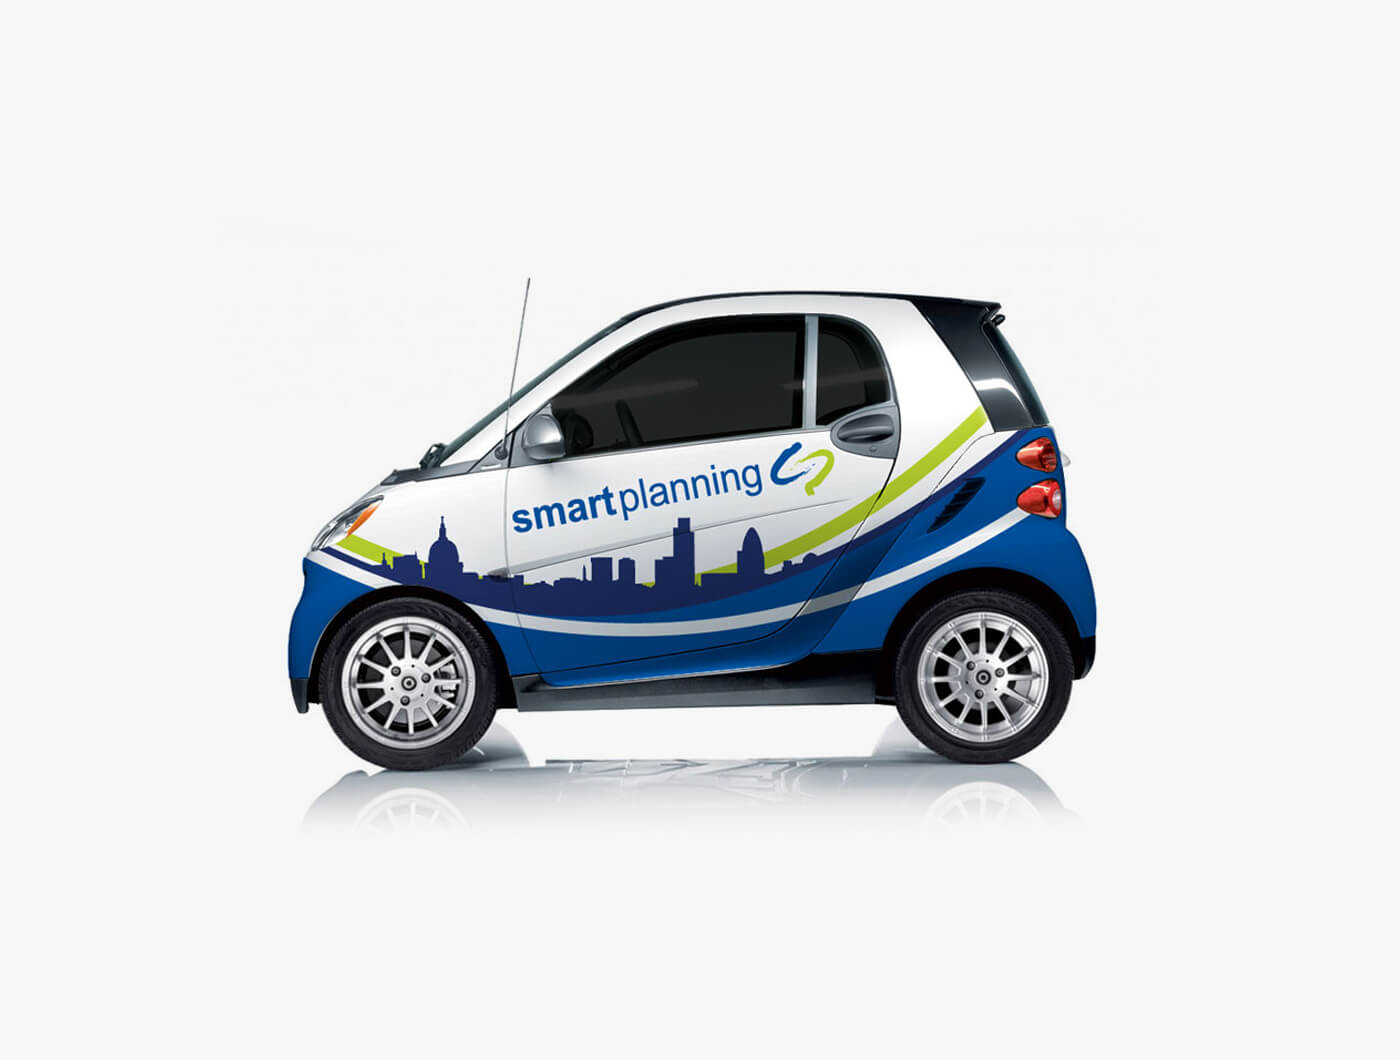 smart car vinyl wrap design